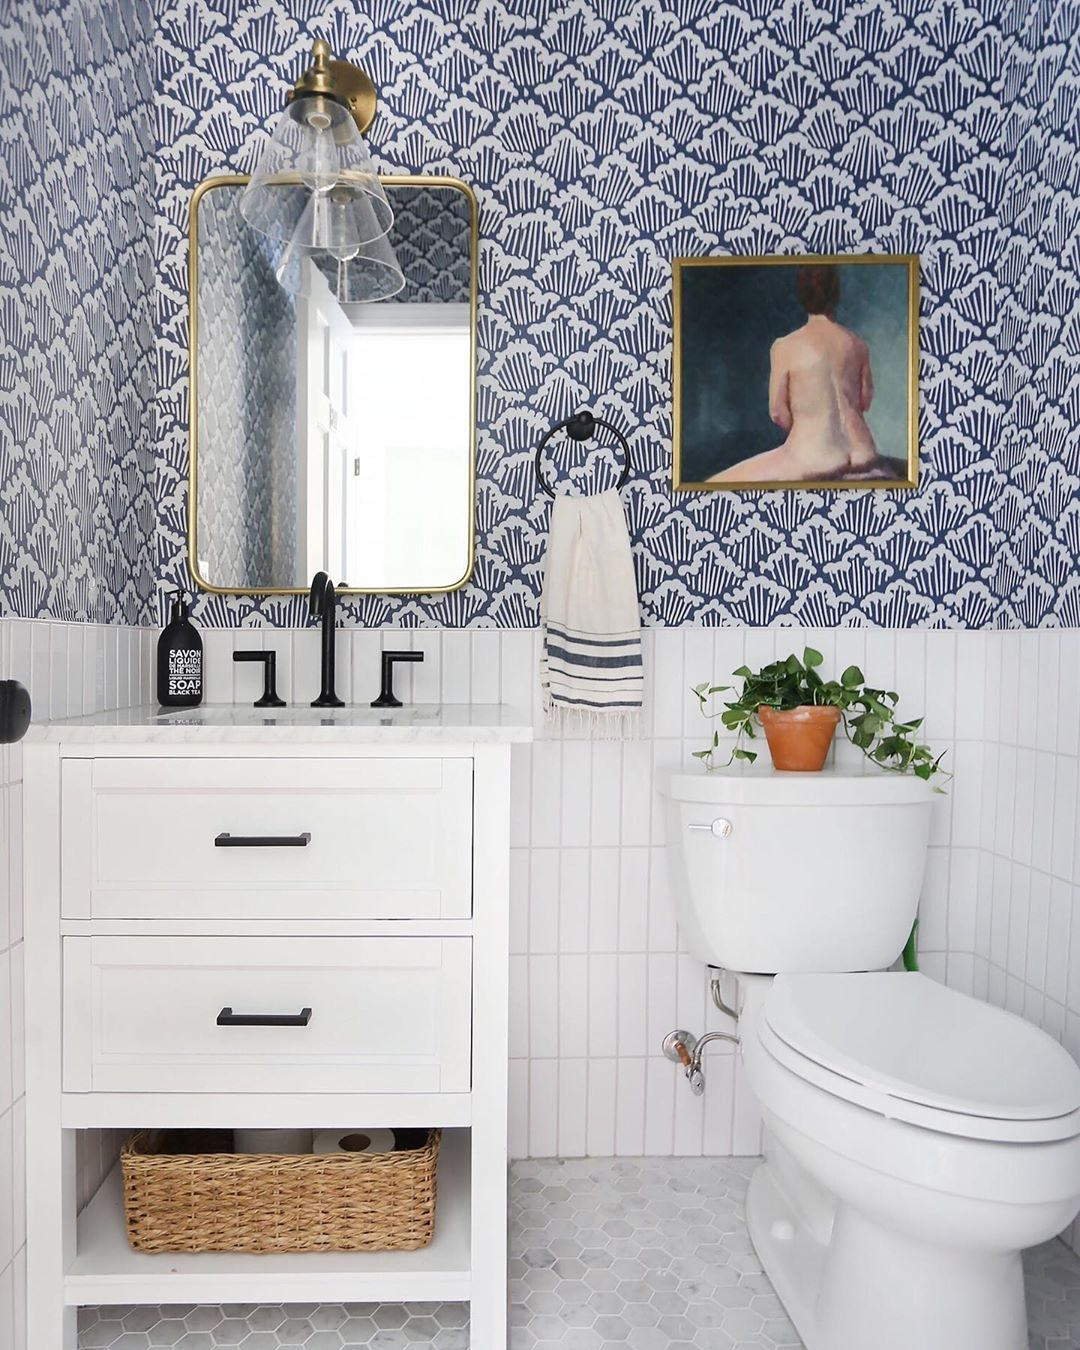 Erin Wheeler On Instagram Hello And Happy Saturday I Just Hit Publish On A New Blog Post All A Modern Powder Rooms Powder Room Wallpaper Powder Room Remodel New country housepowder room